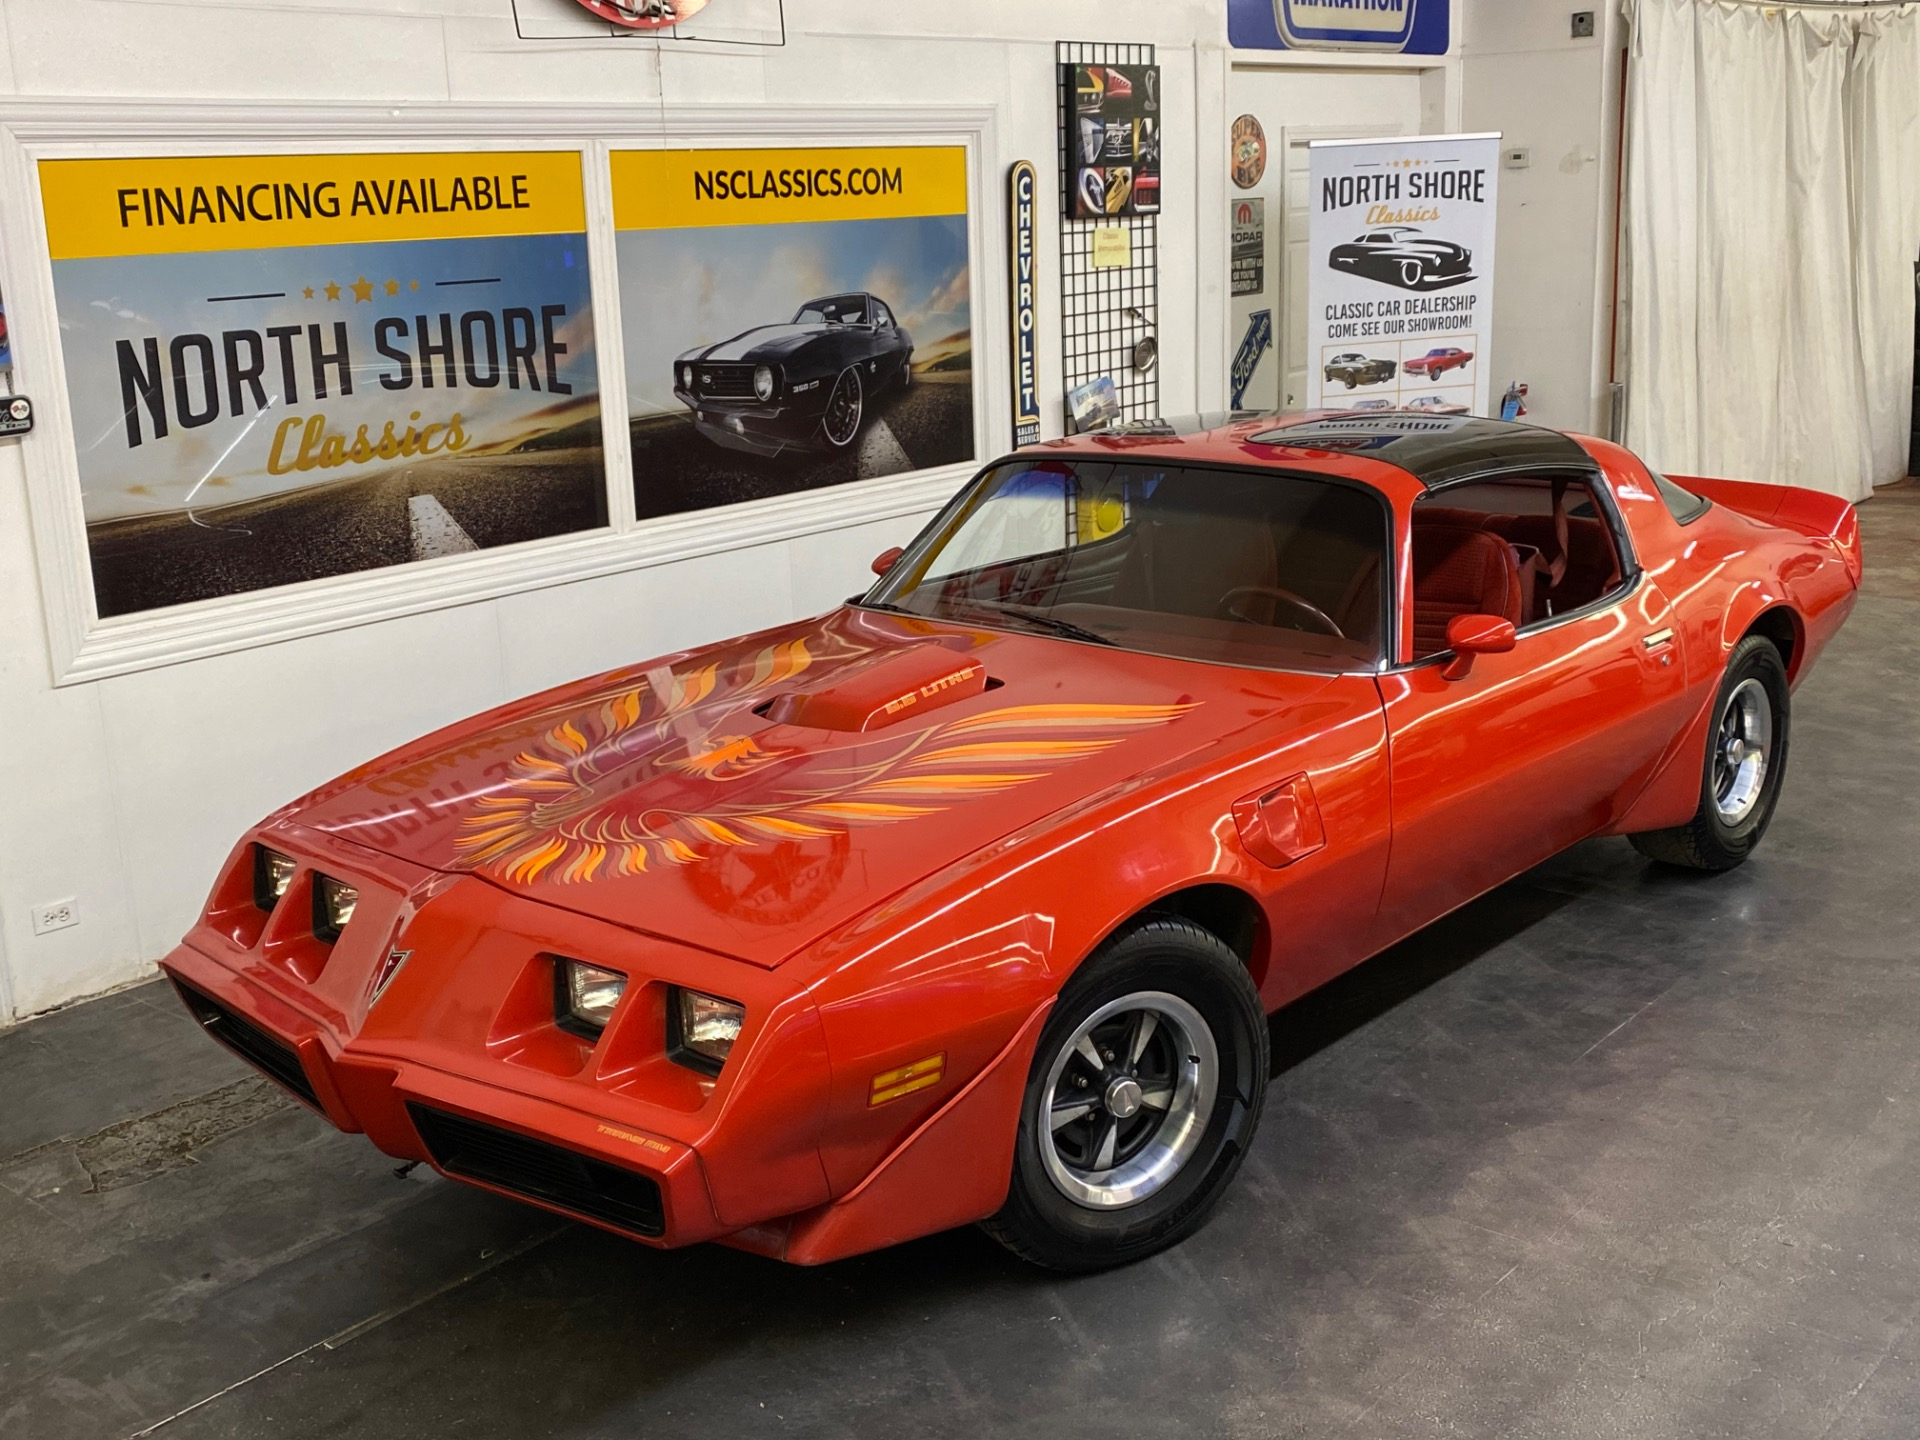 Used 1979 Pontiac Trans Am -T-Tops-AC-Dual Exhaust-Bucket seats-Ralley Wheels-Clean Car- | Mundelein, IL